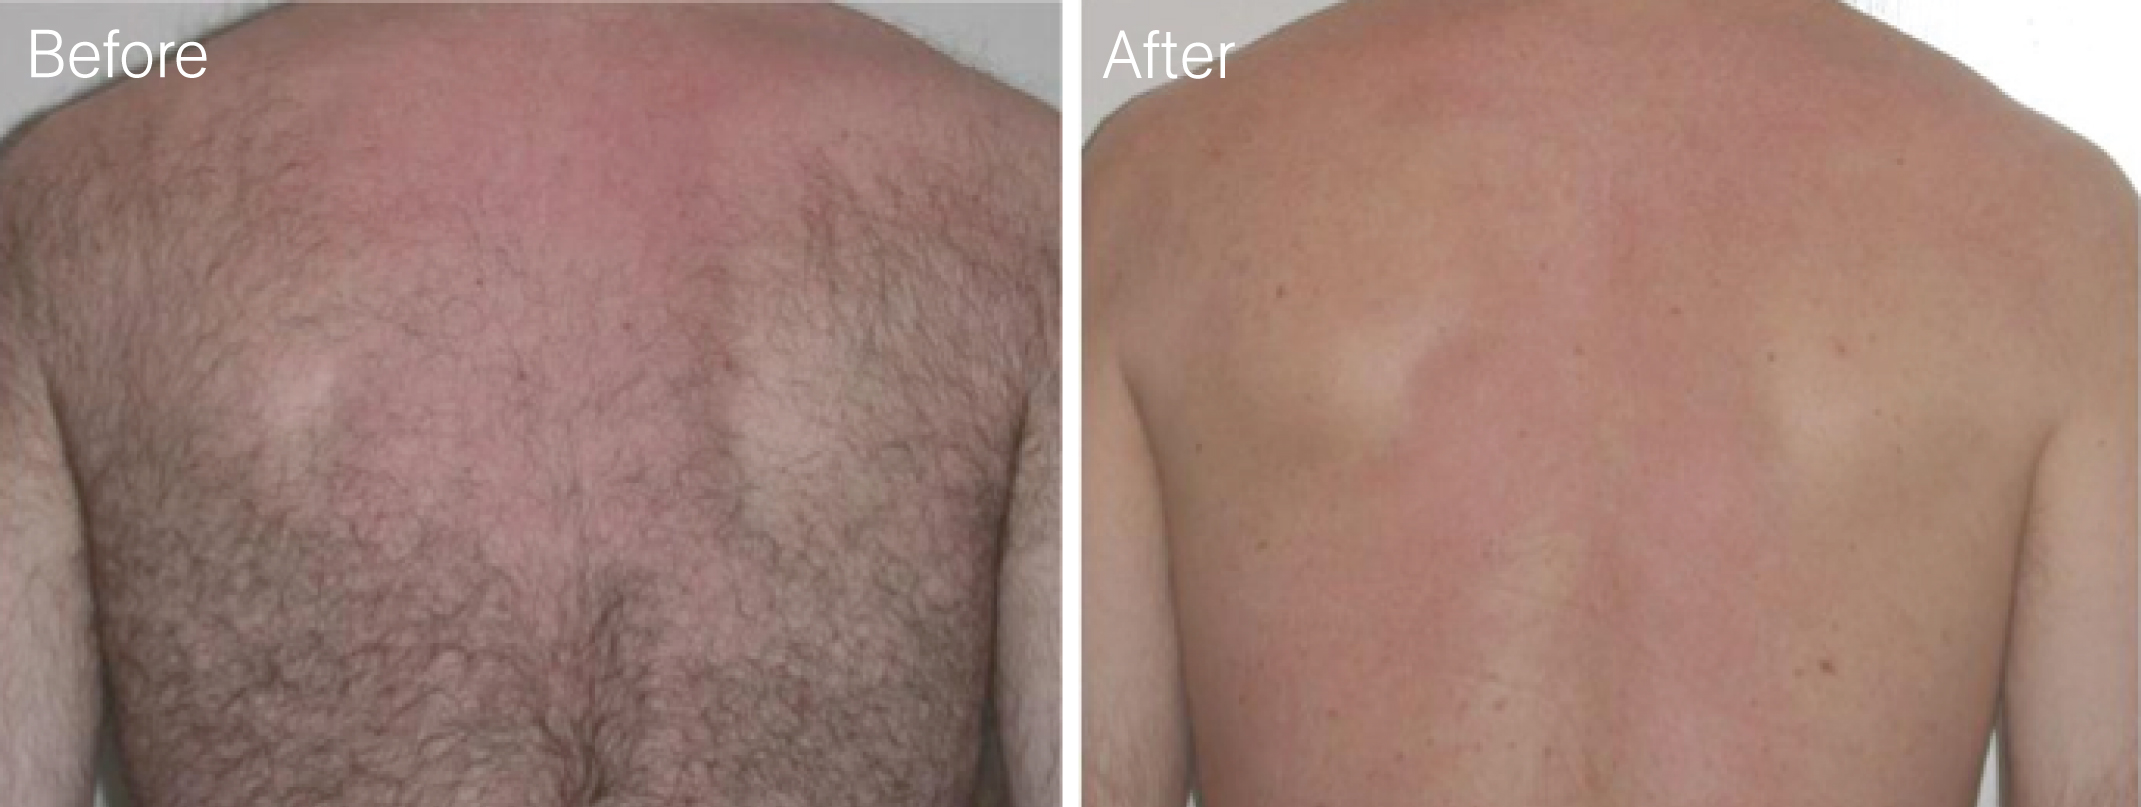 Male brazilian laser treatment 1